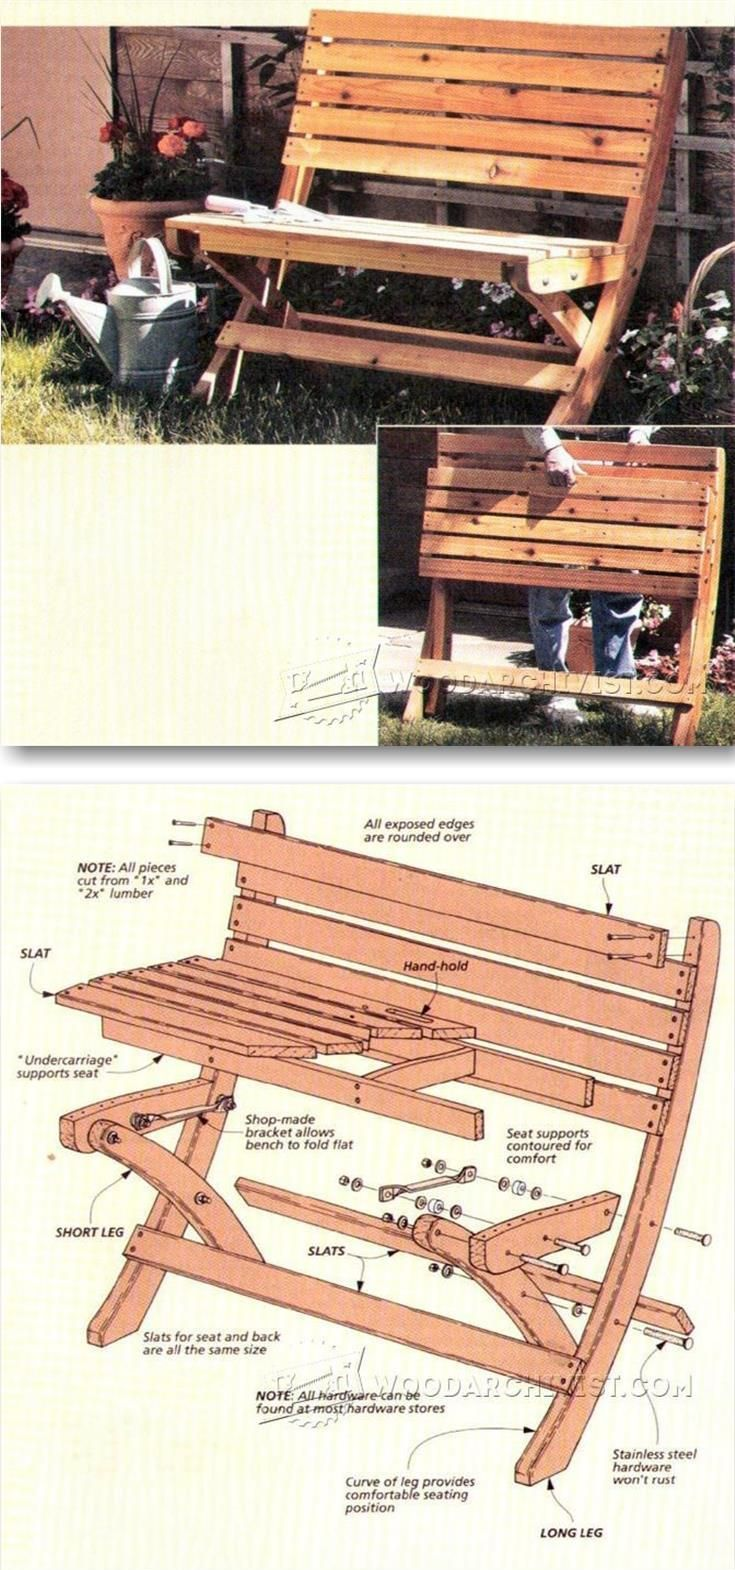 Portable Folding Bench Plans   Outdoor Furniture Plans And Projects |  WoodArchivist.com